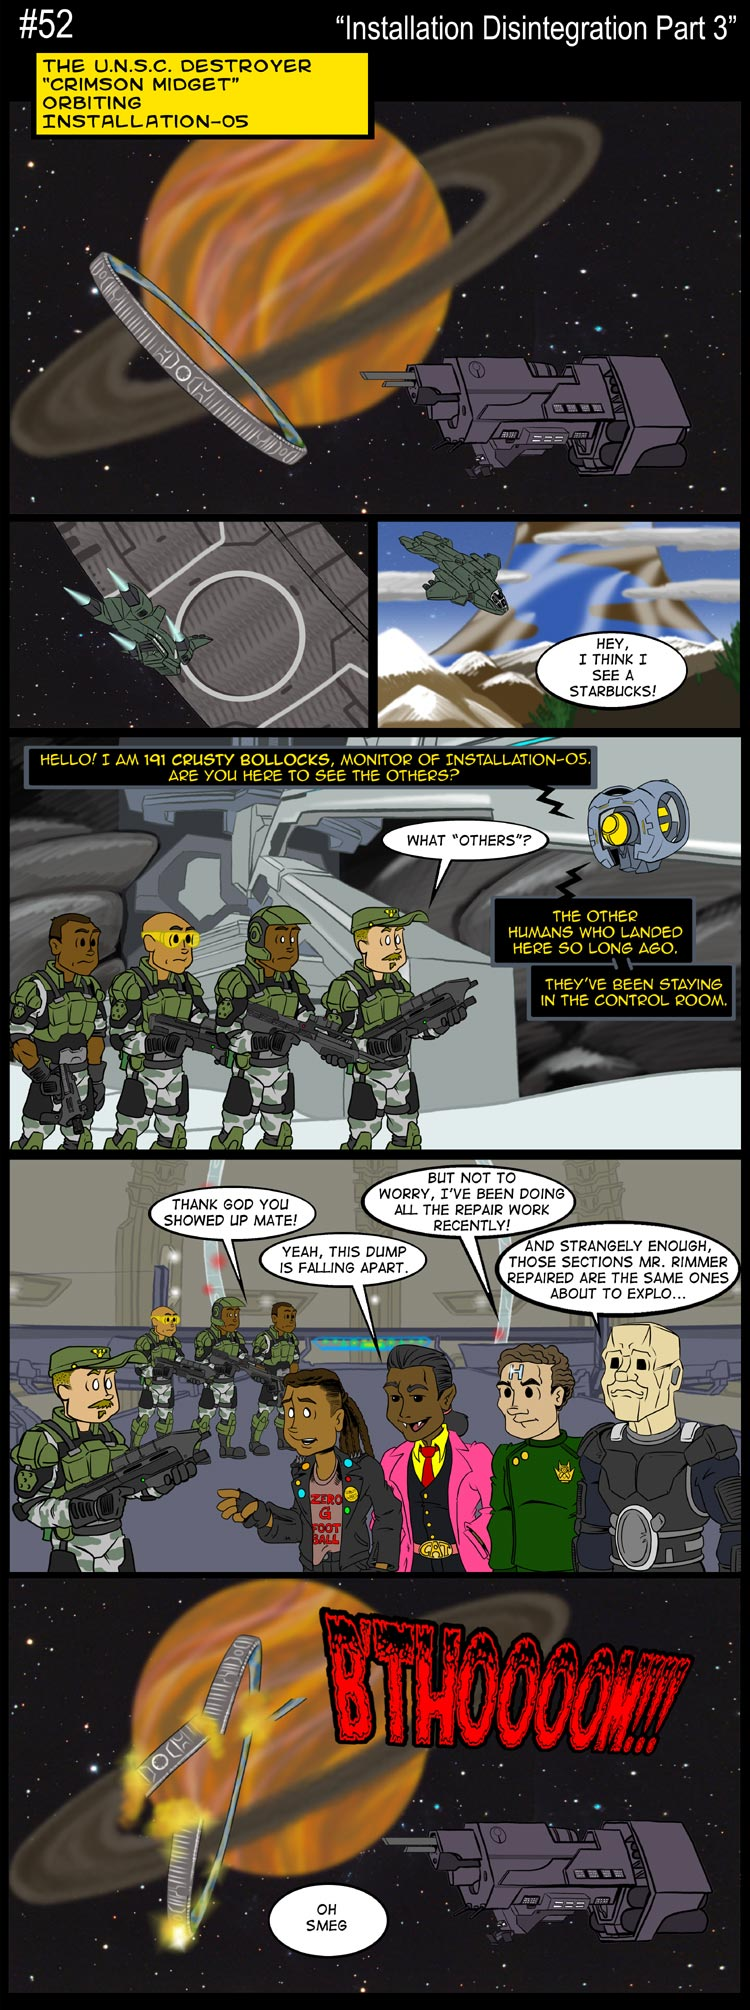 Halo porn comics & together....what